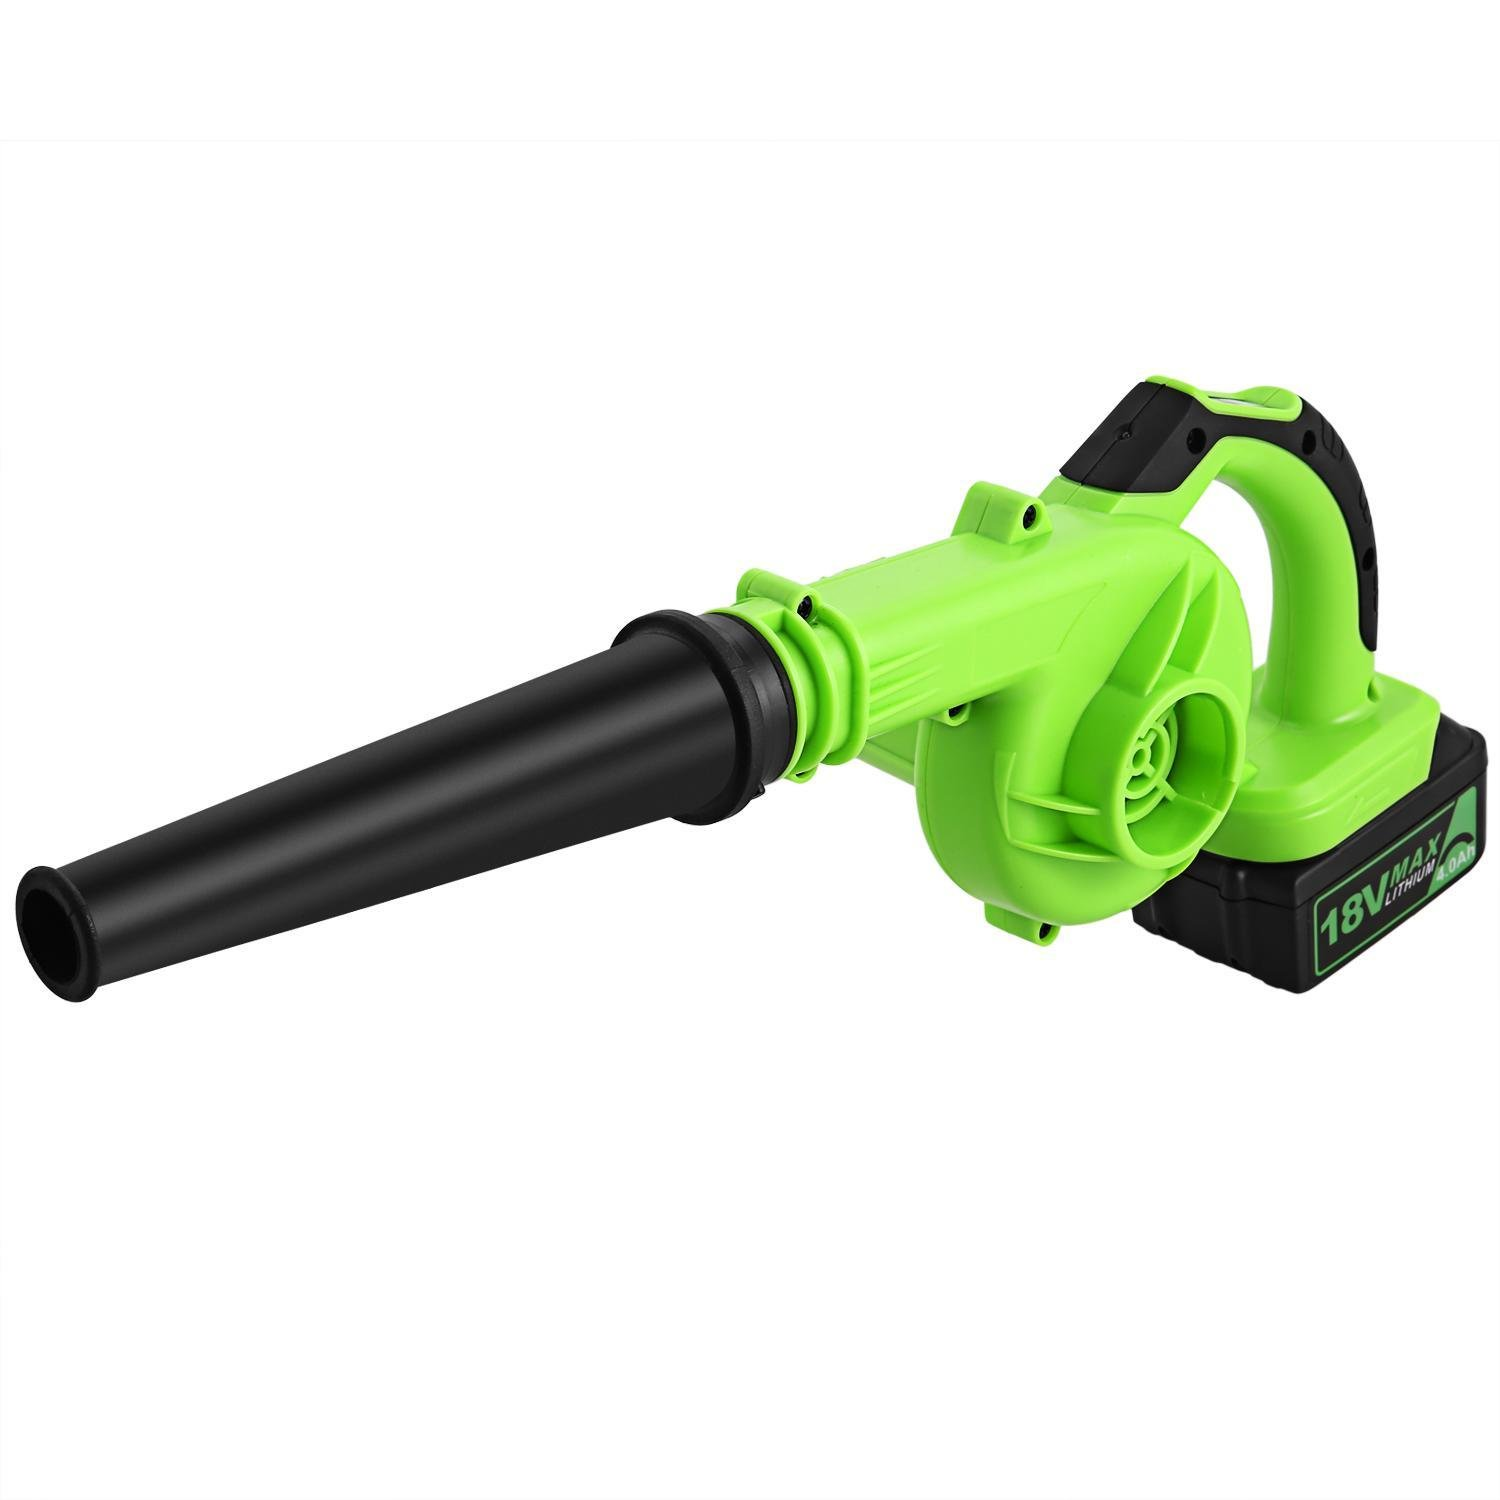 Buy Ferty Cordless Hand Held Blower for Dust Leaf Blower